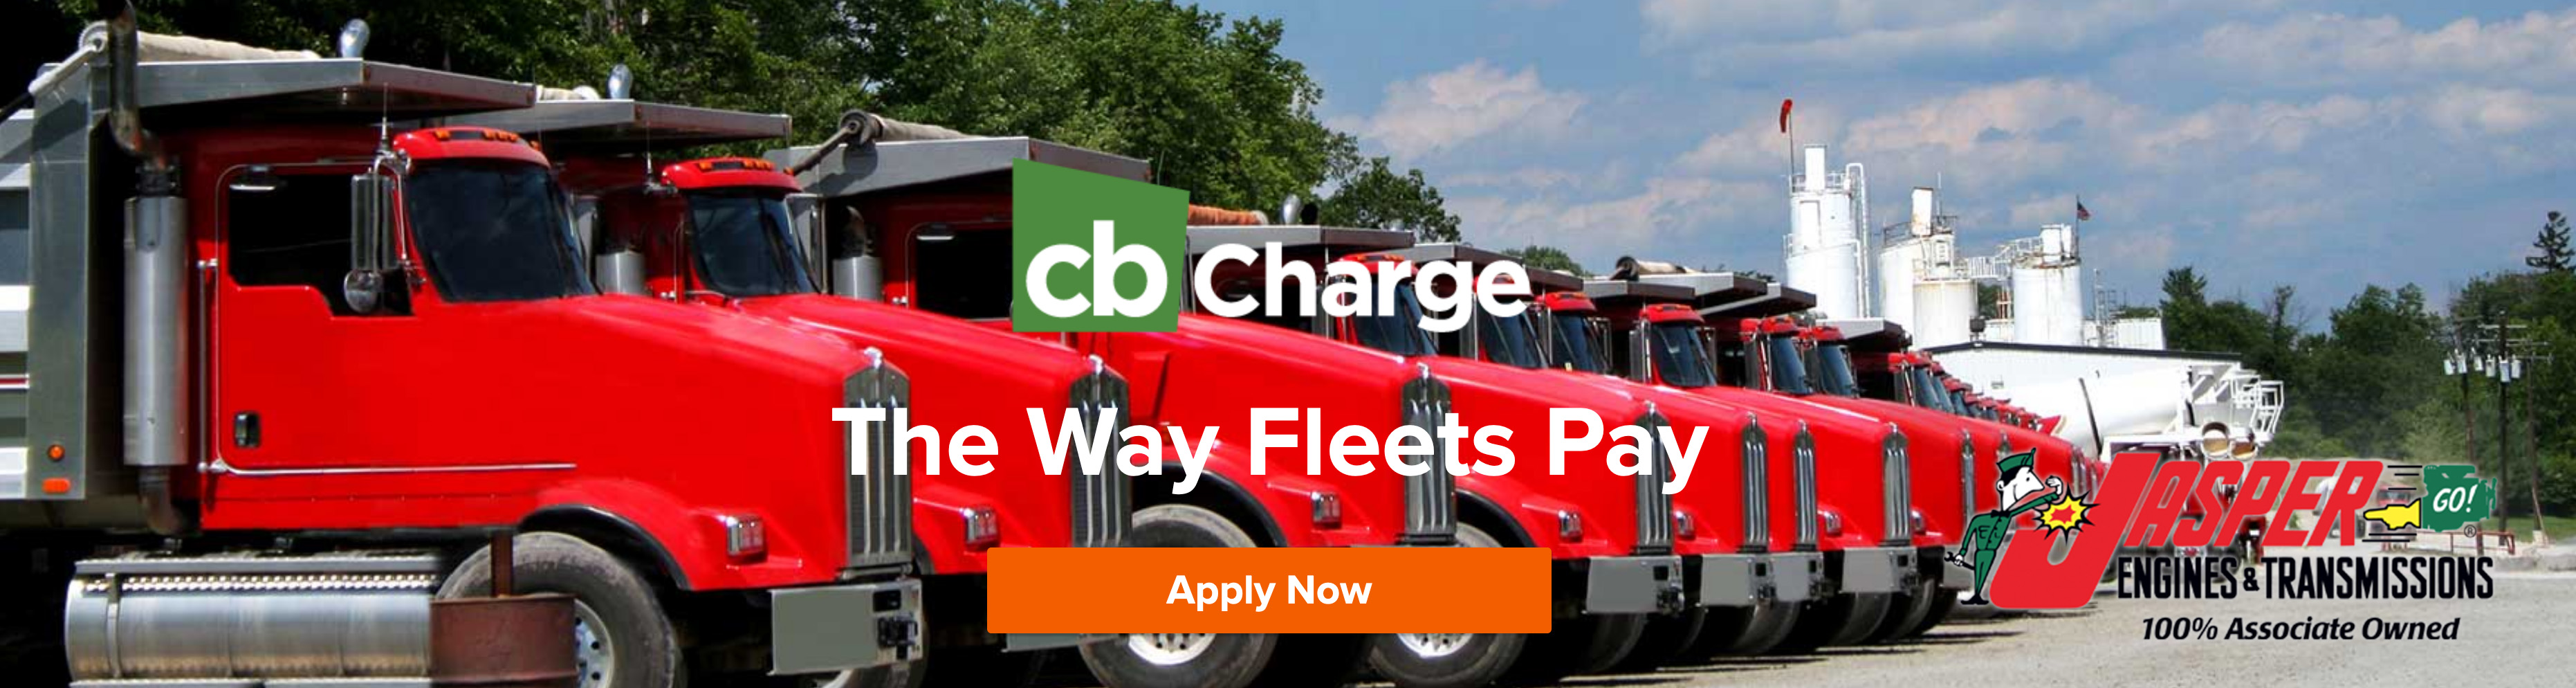 cbCharge fleet financing banner click here to apply